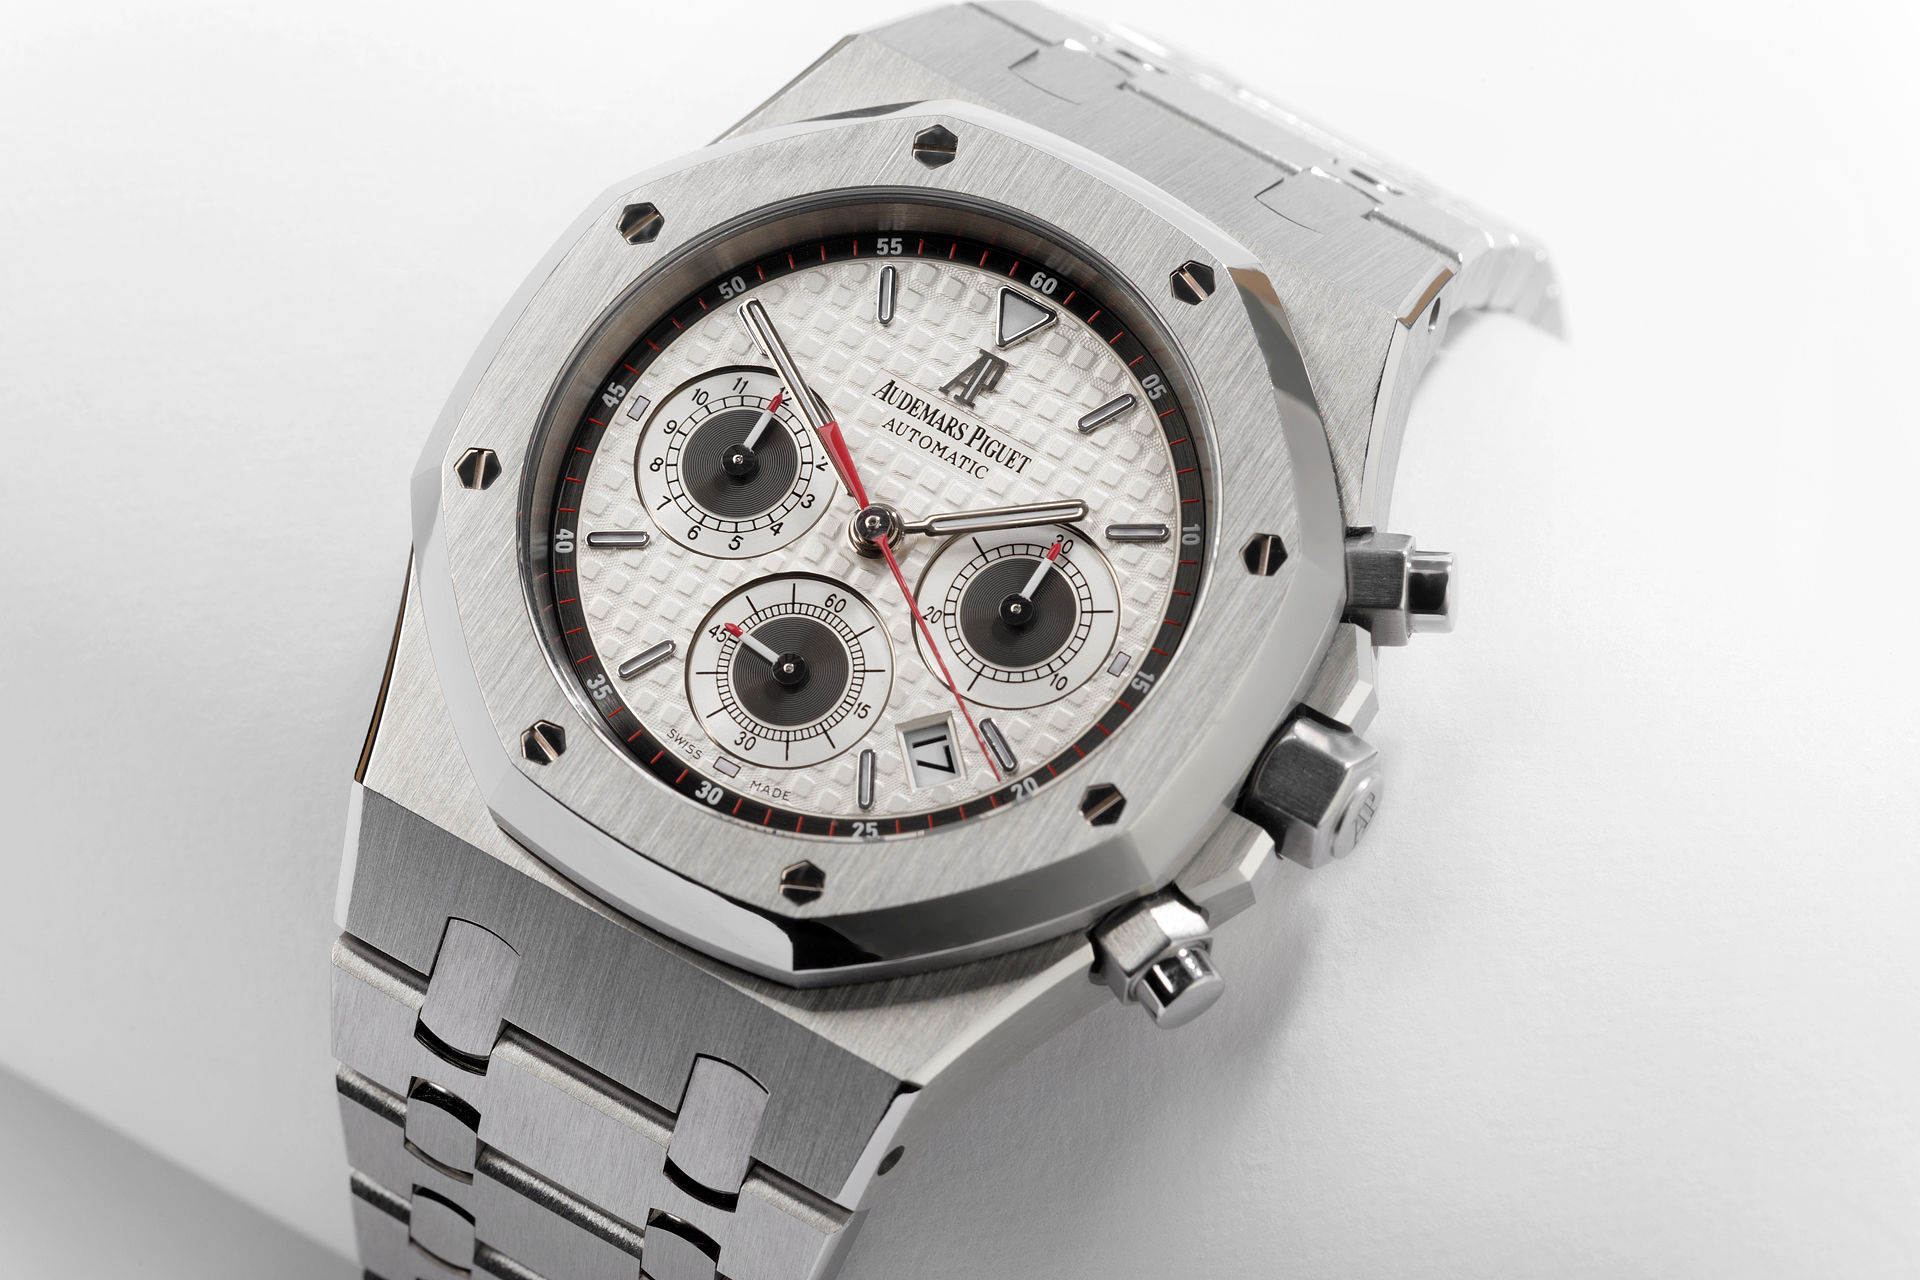 ref 26300ST.OO.1110ST.06 | 39mm Chronograph  | Audemars Piguet Royal Oak